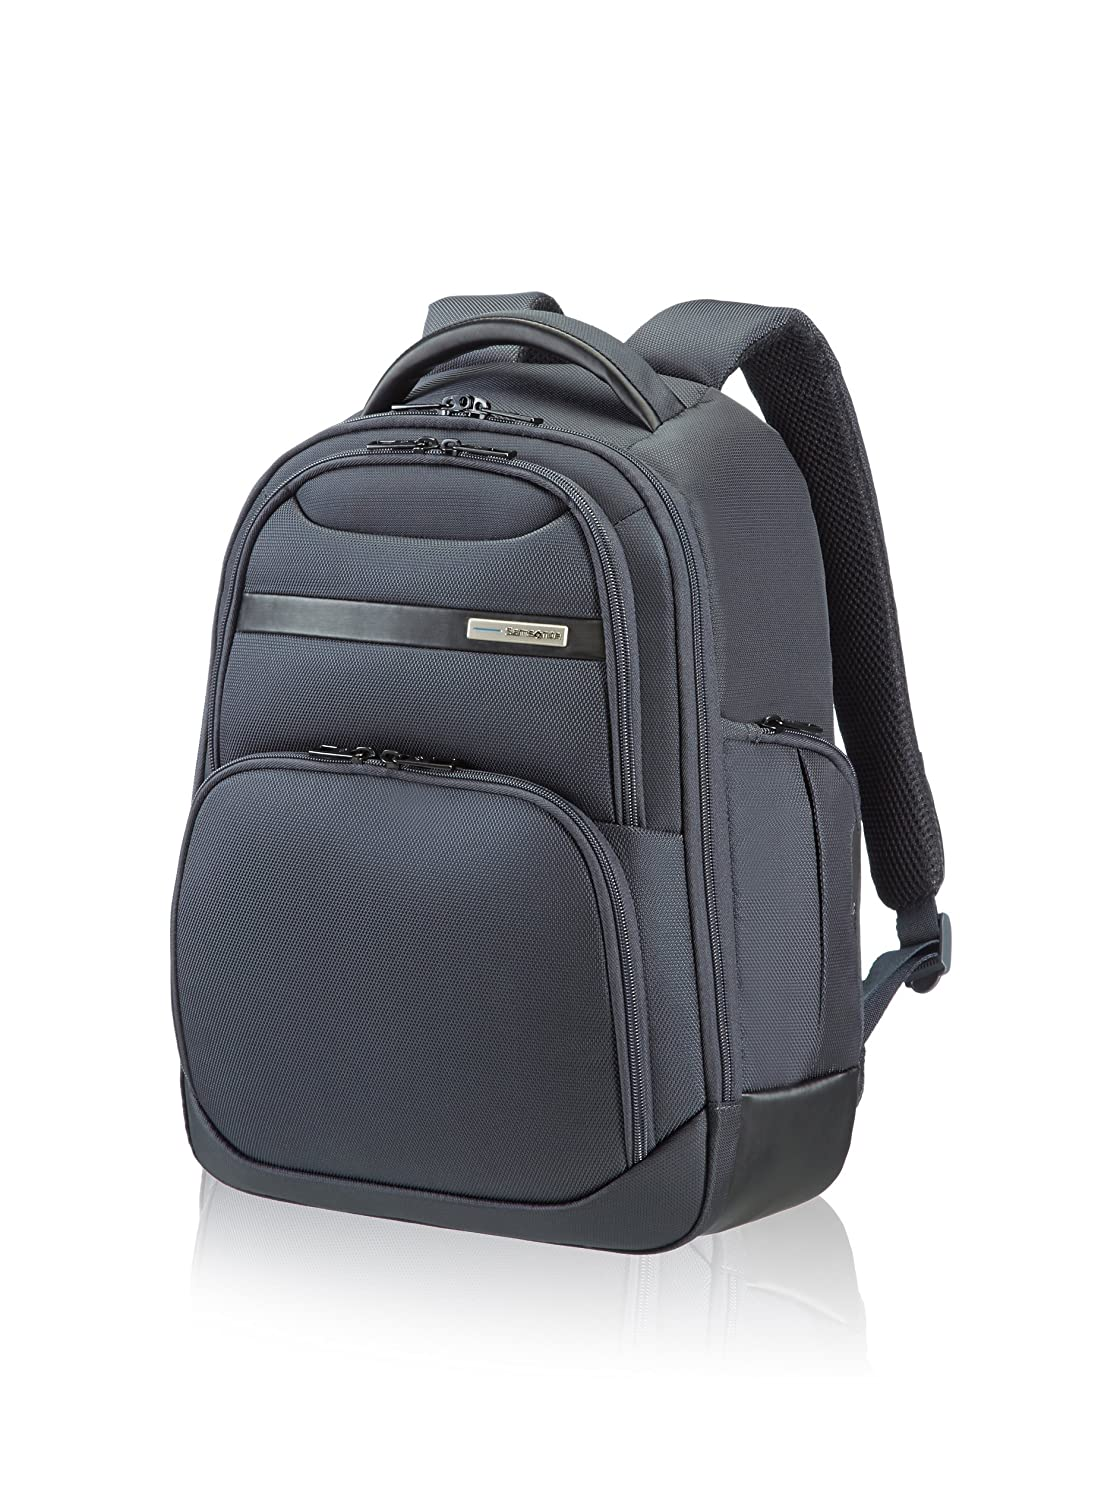 Samsonite Vectura Laptop Backback S Mochila para ordenador portátil de Color Negro